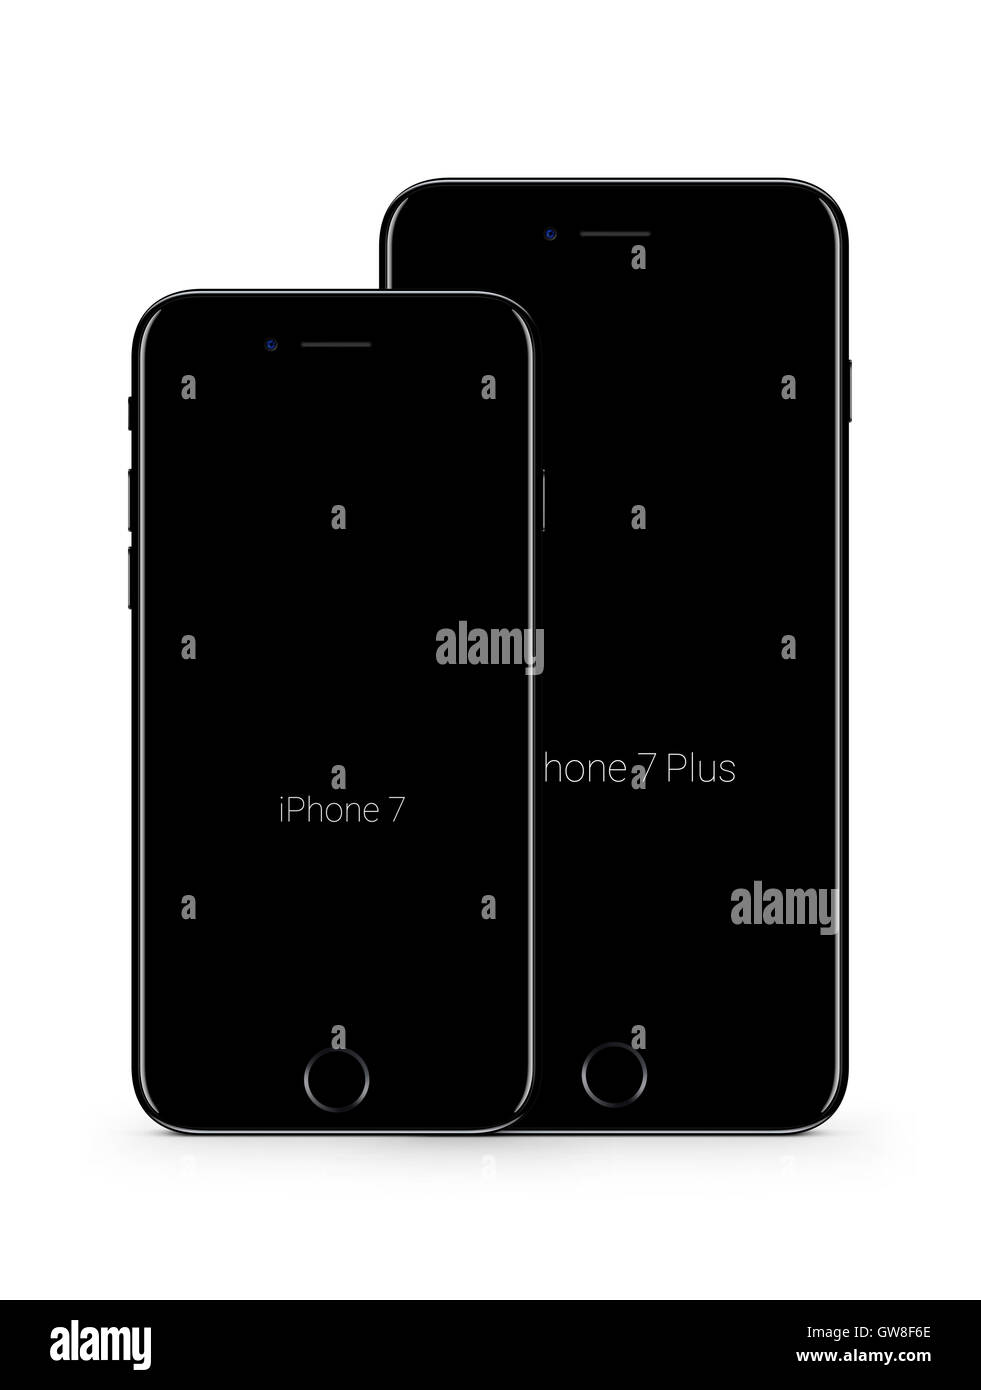 Digitally generated image of new cell phone, iphone 7 and iphone 7 plus. - Stock Image